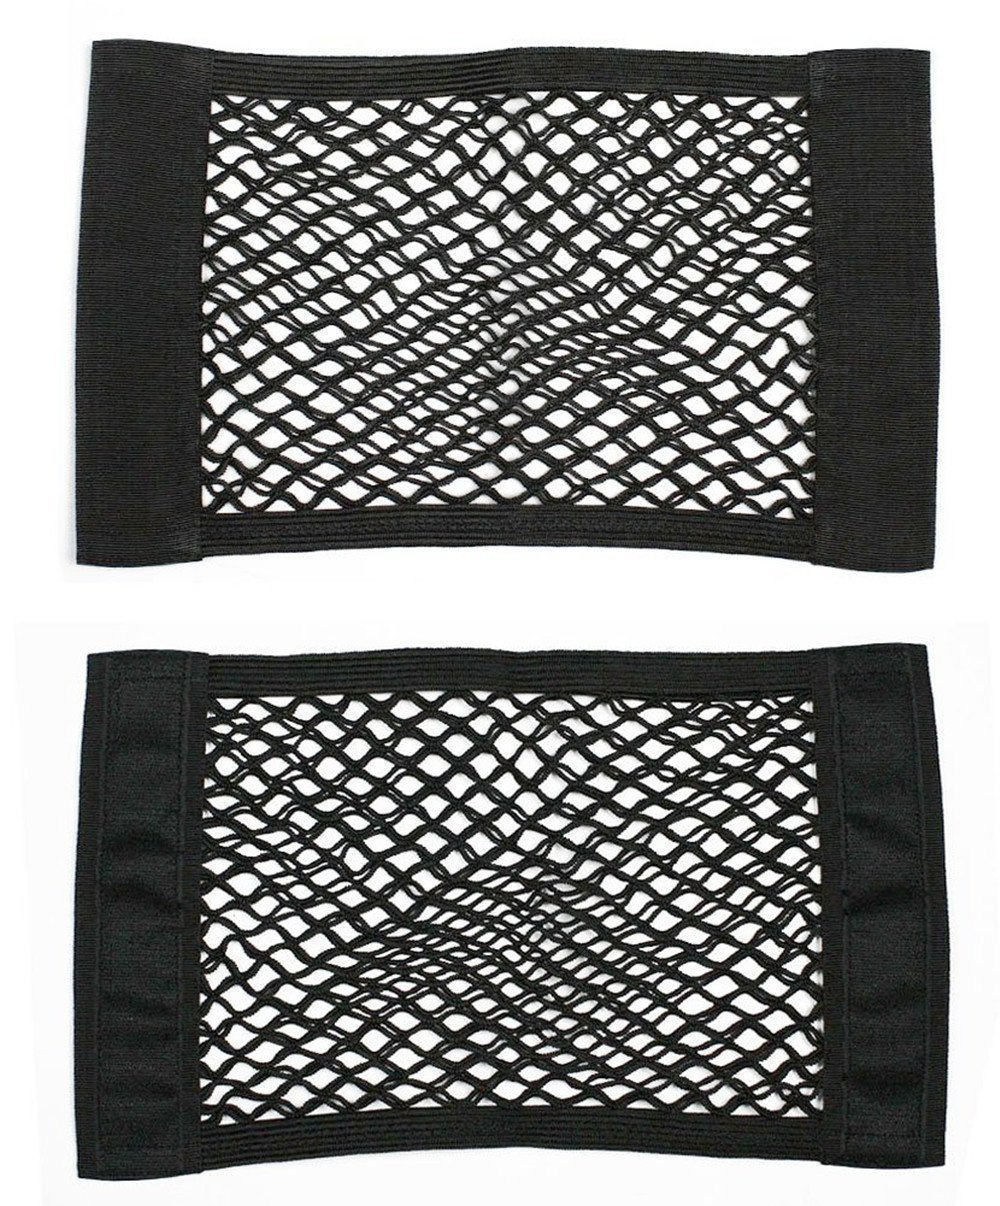 Wommty Car Trunk Storage Net, Black Magic Adhesive Storage Net Elastic String Net Mesh Storage Pocket for Bottles, Groceries, Storage Add On Organizers, 2 Pack (Style 2) Wommty EU